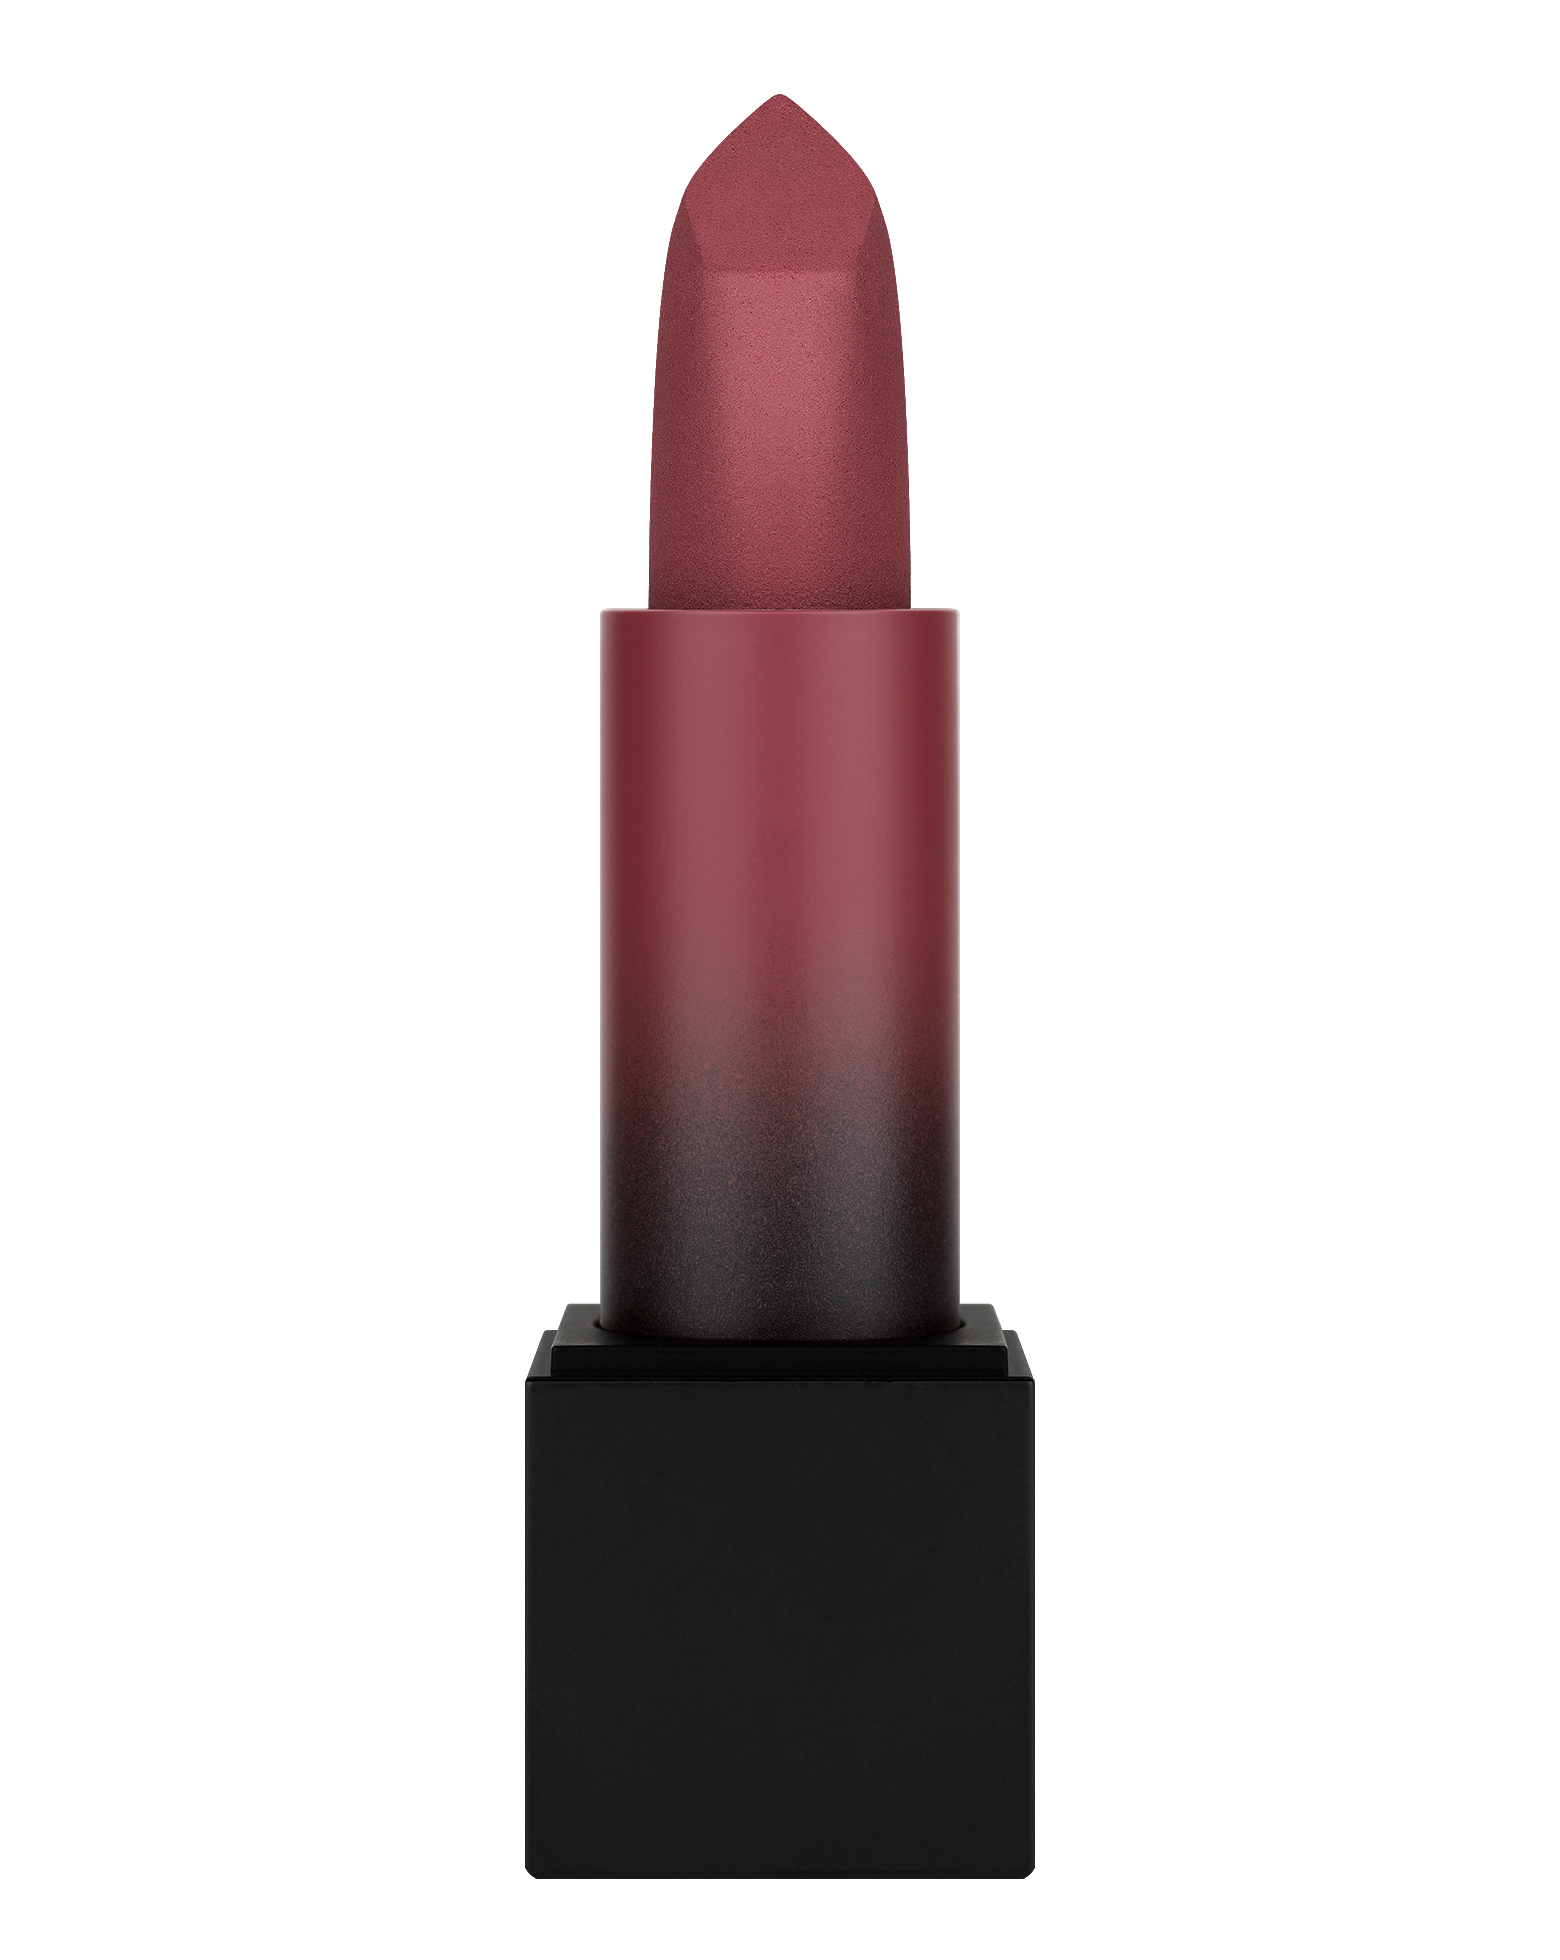 POWER BULLET MATTE LIPSTICK - HUDA BEAUTY